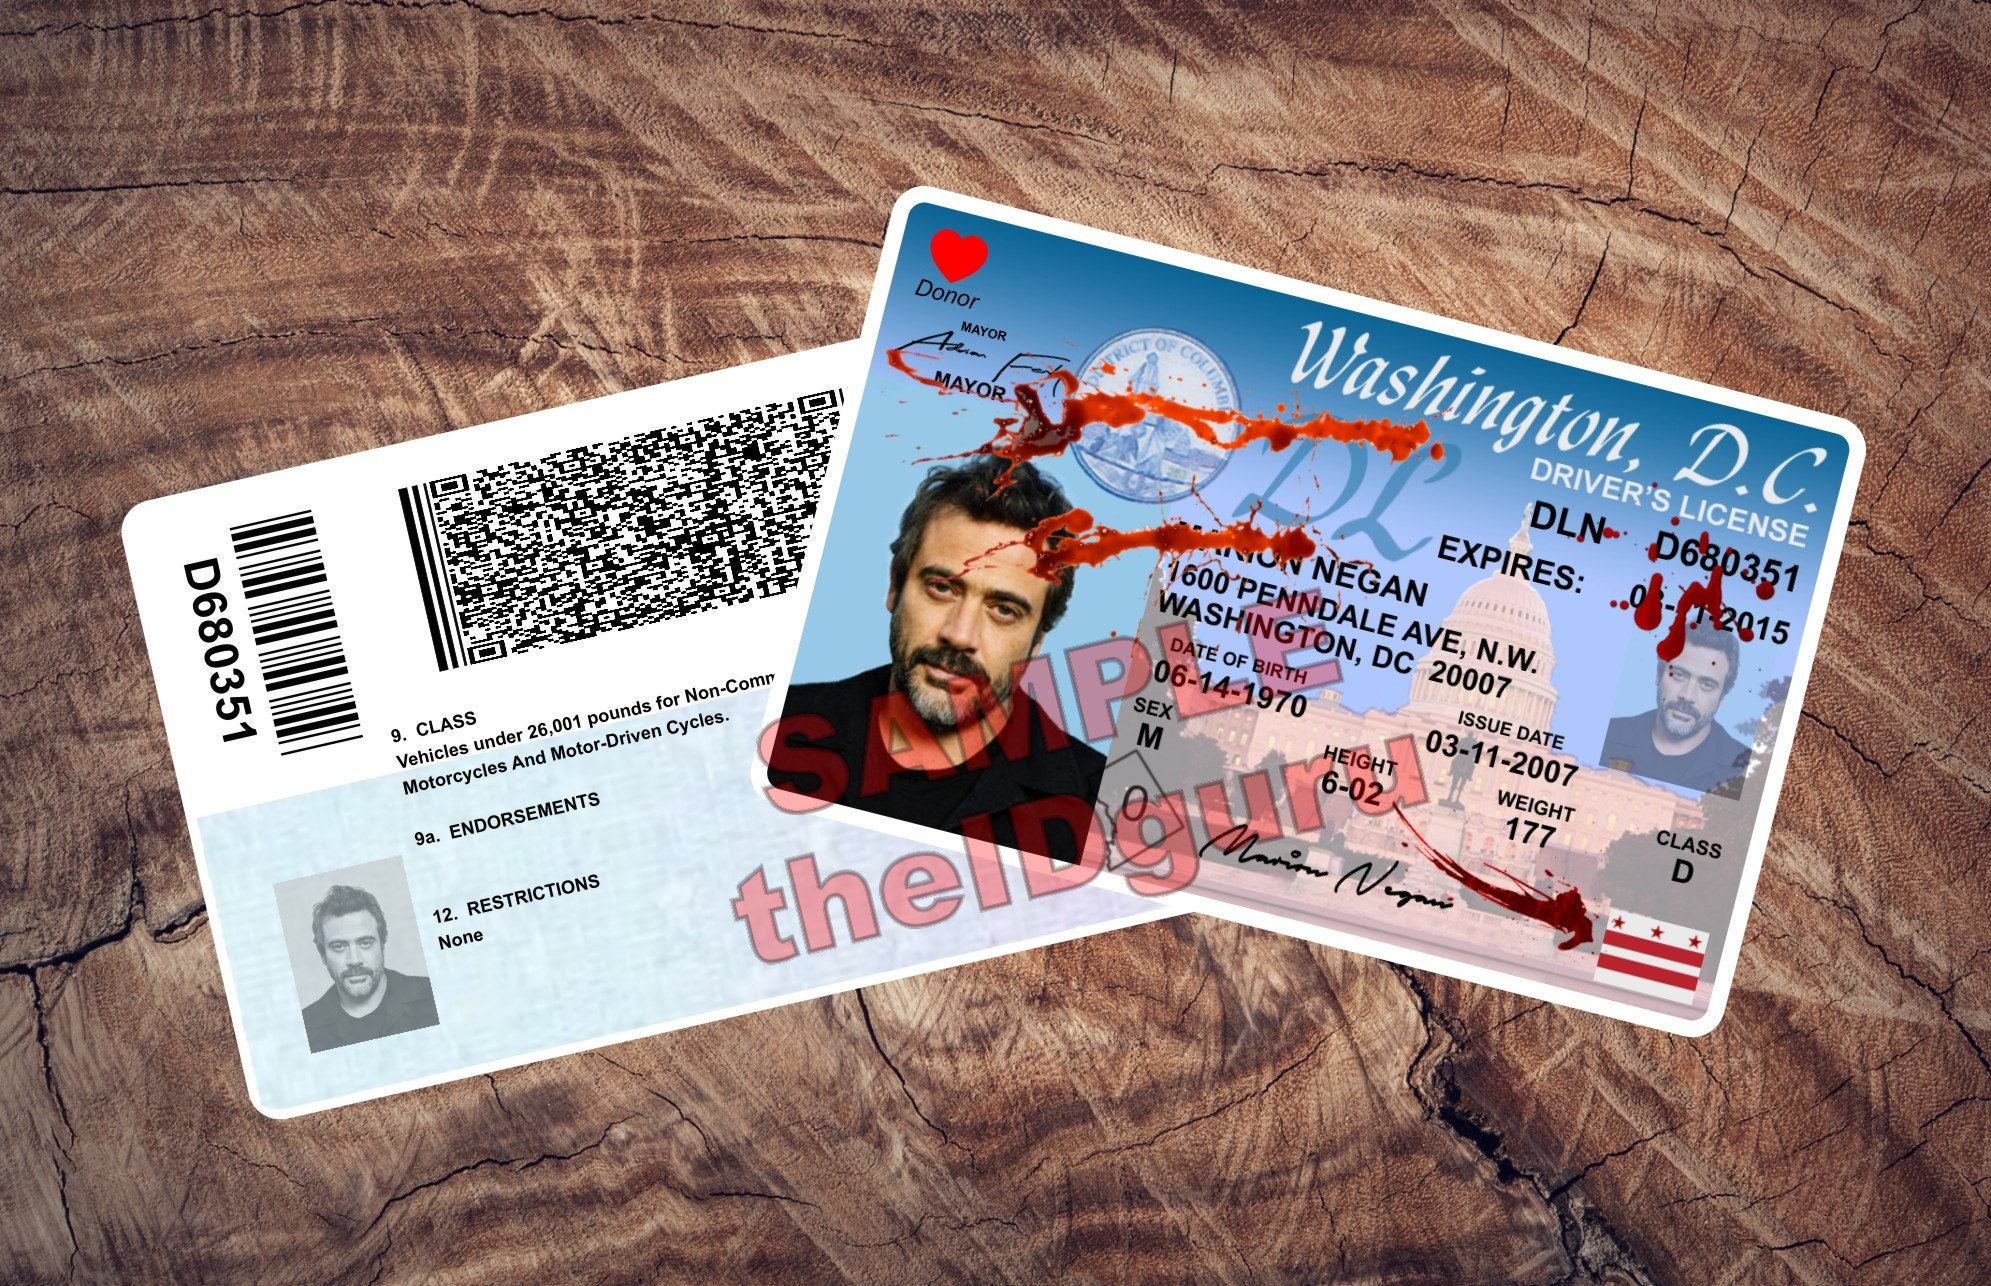 The walking dead negan drivers license most realistic looking the walking dead negan drivers license most realistic looking available 2 sided card with holograms blood spatter version altavistaventures Gallery